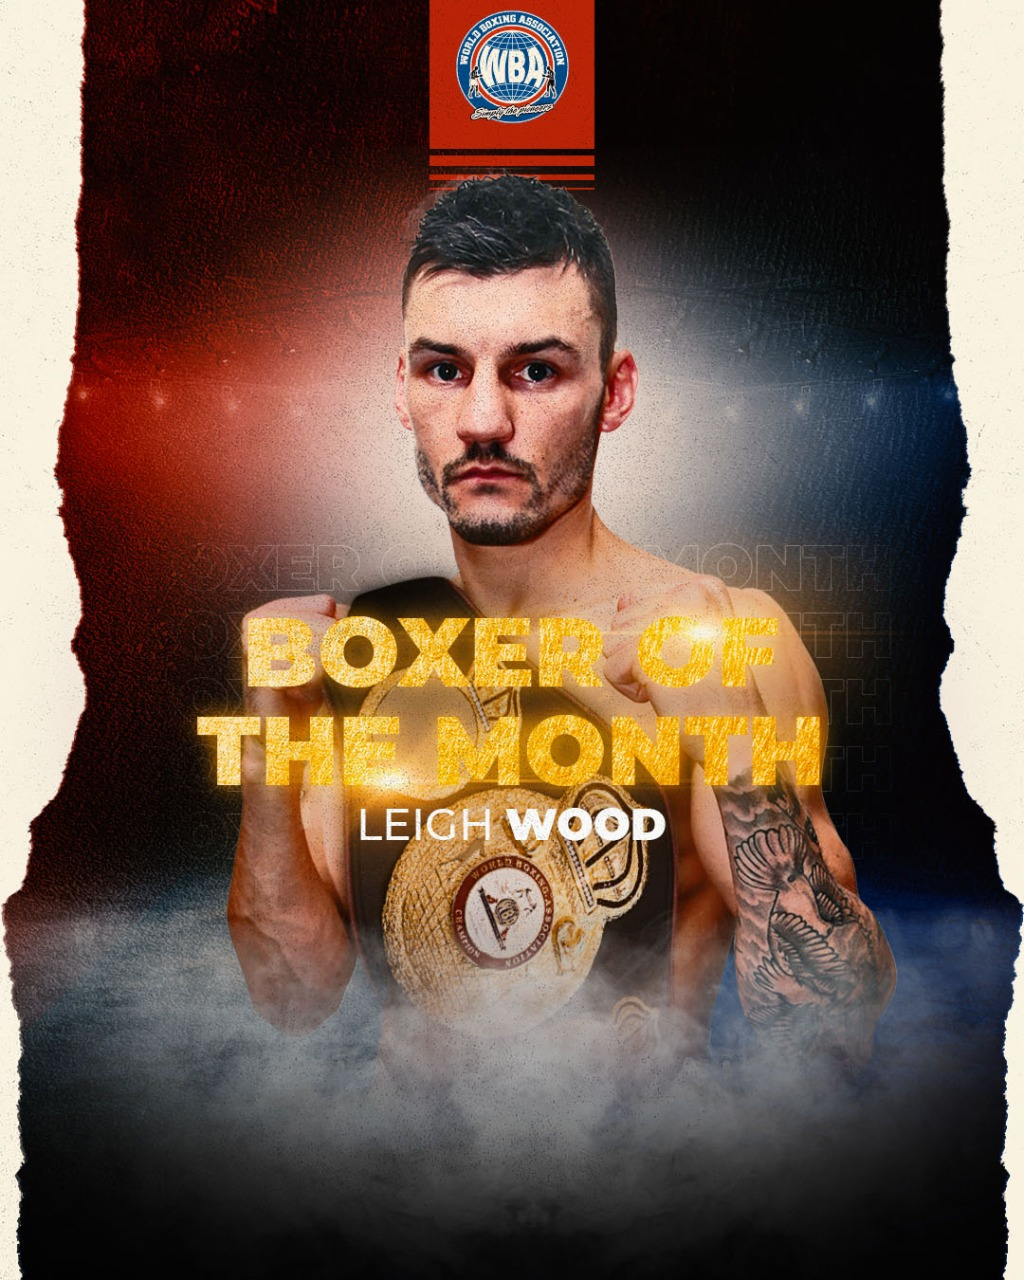 Wood is the WBA Boxer of the Month